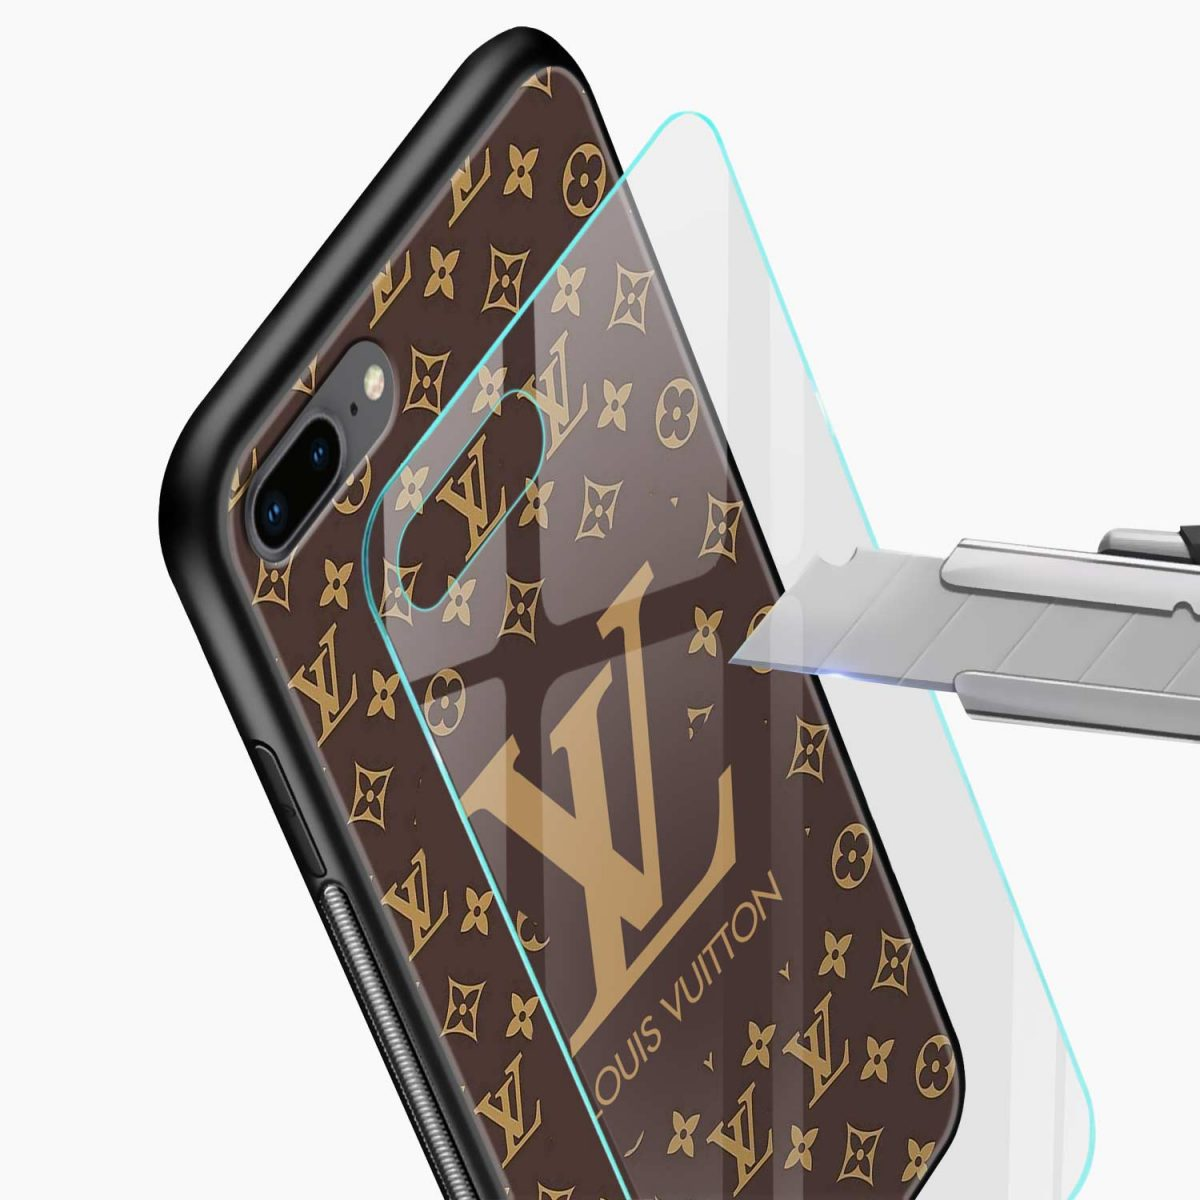 louis vuitton glass view apple iphone 7 8 plus back cover